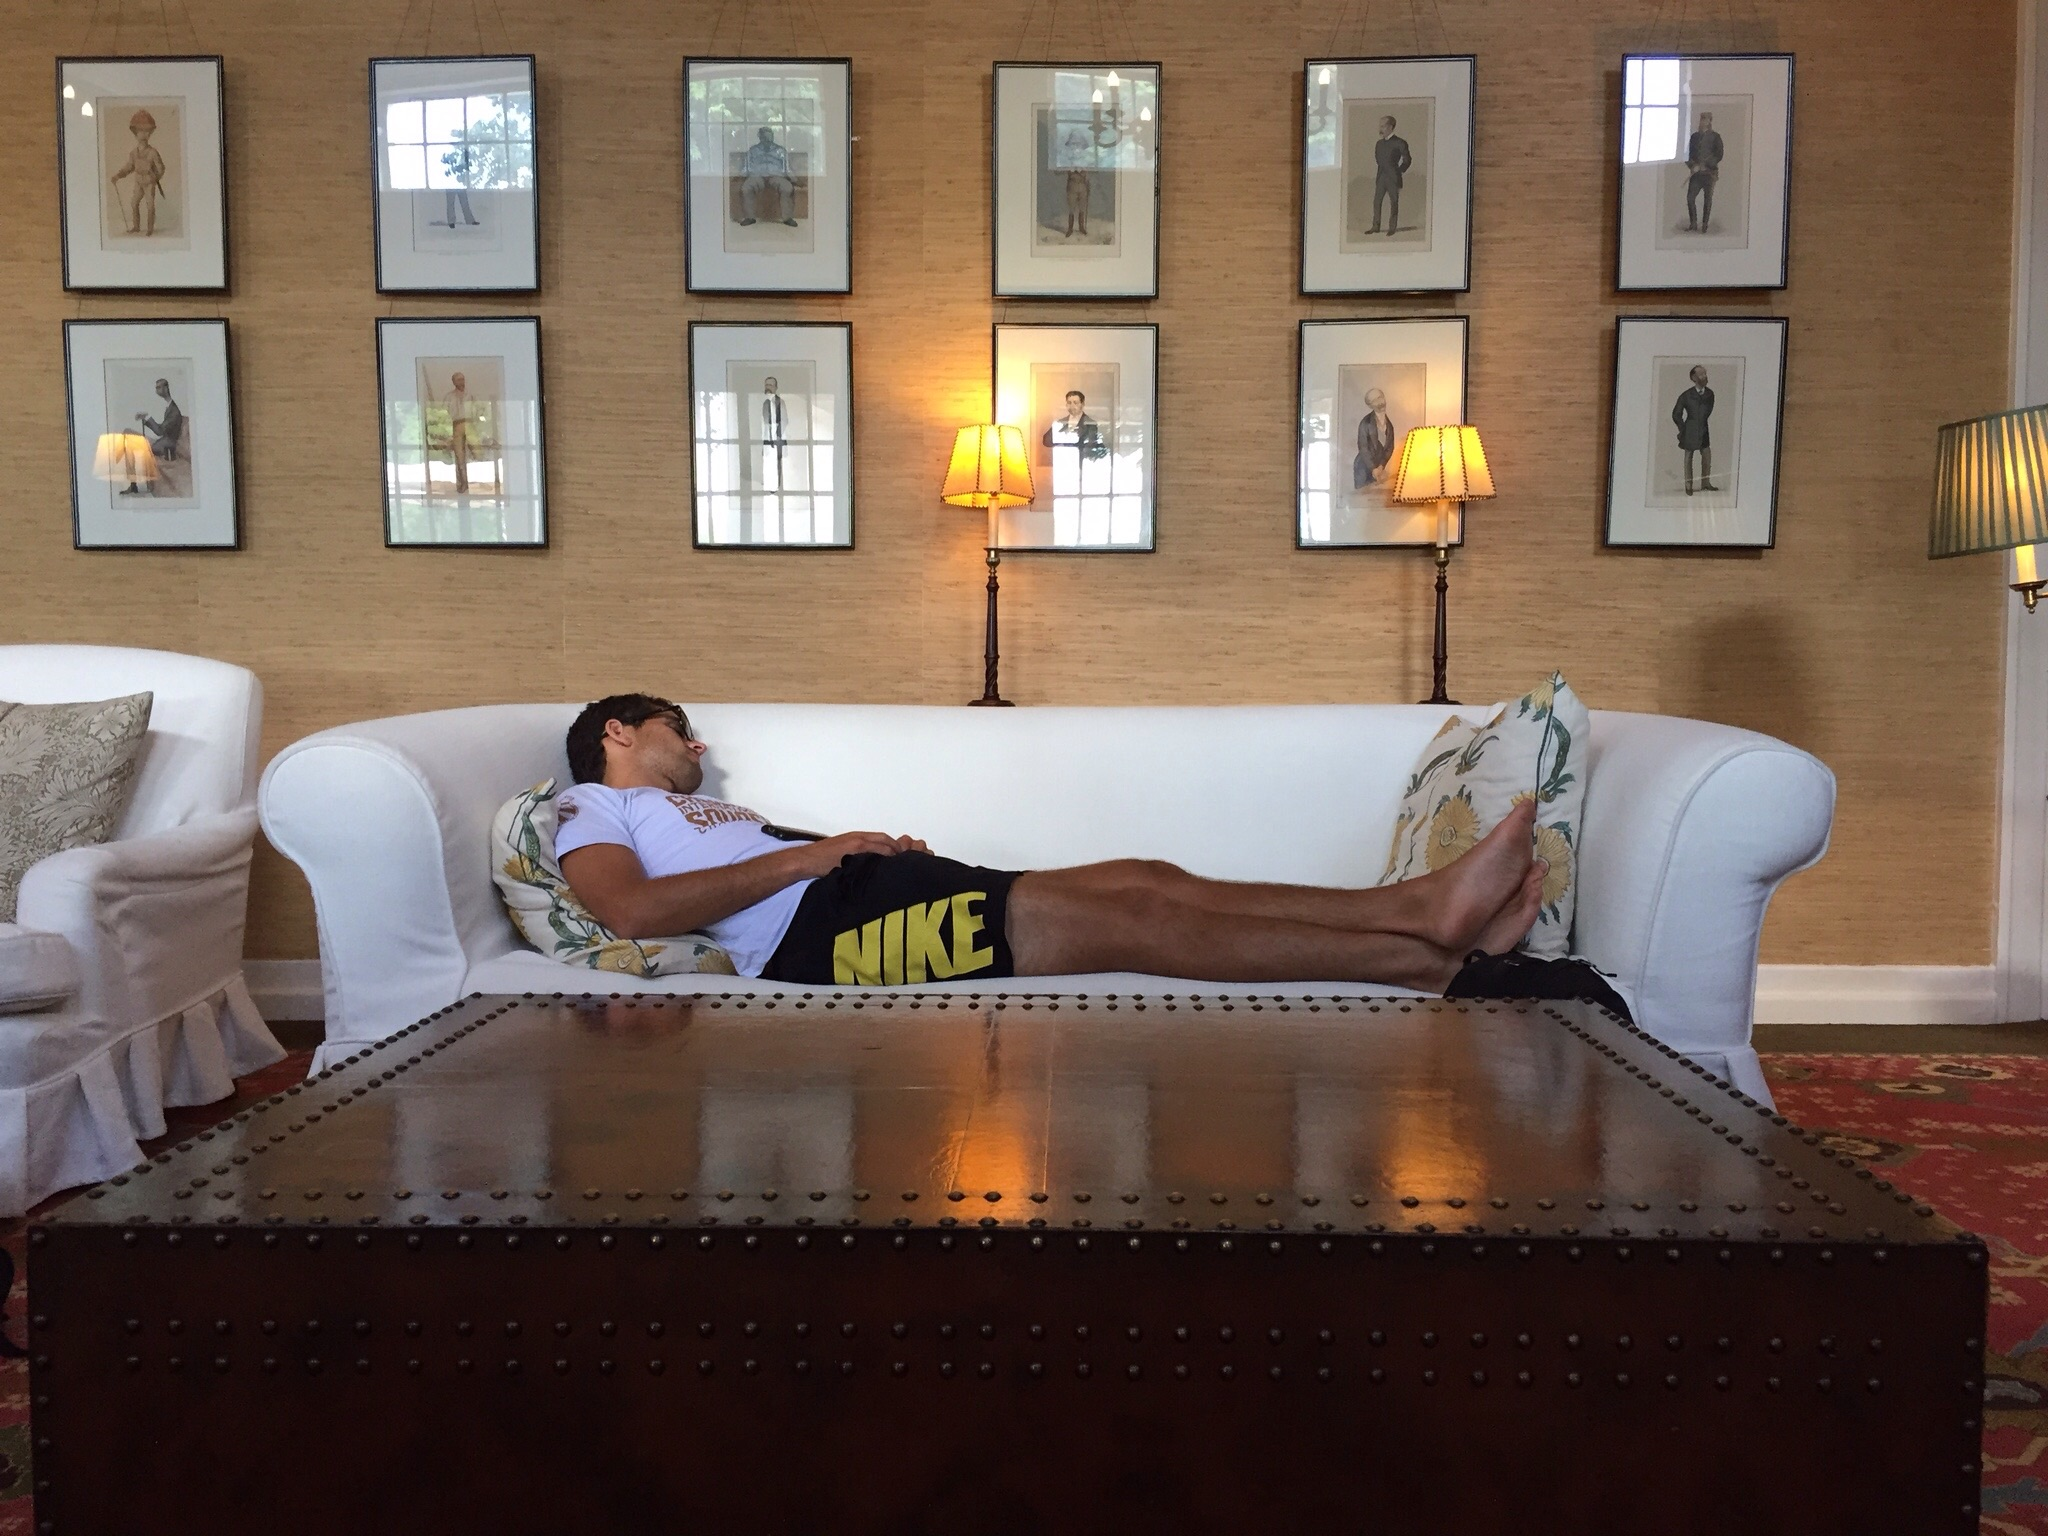 Couch surfing the tour